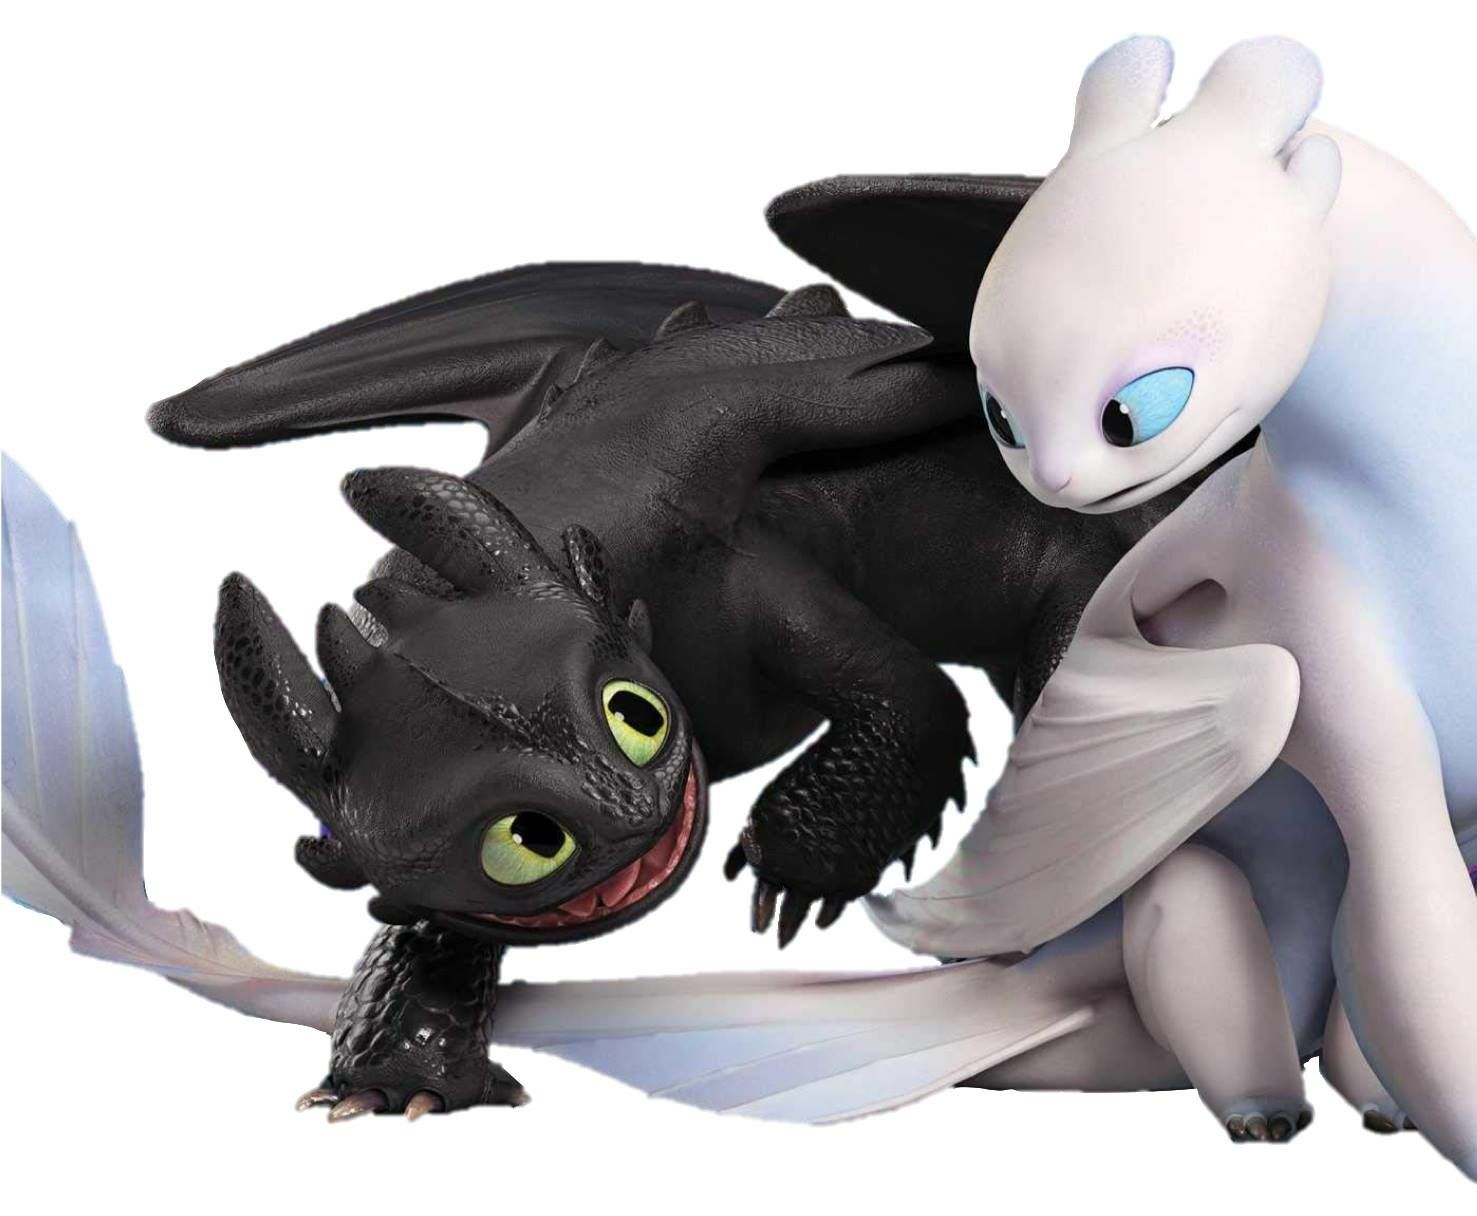 Toothless Porn